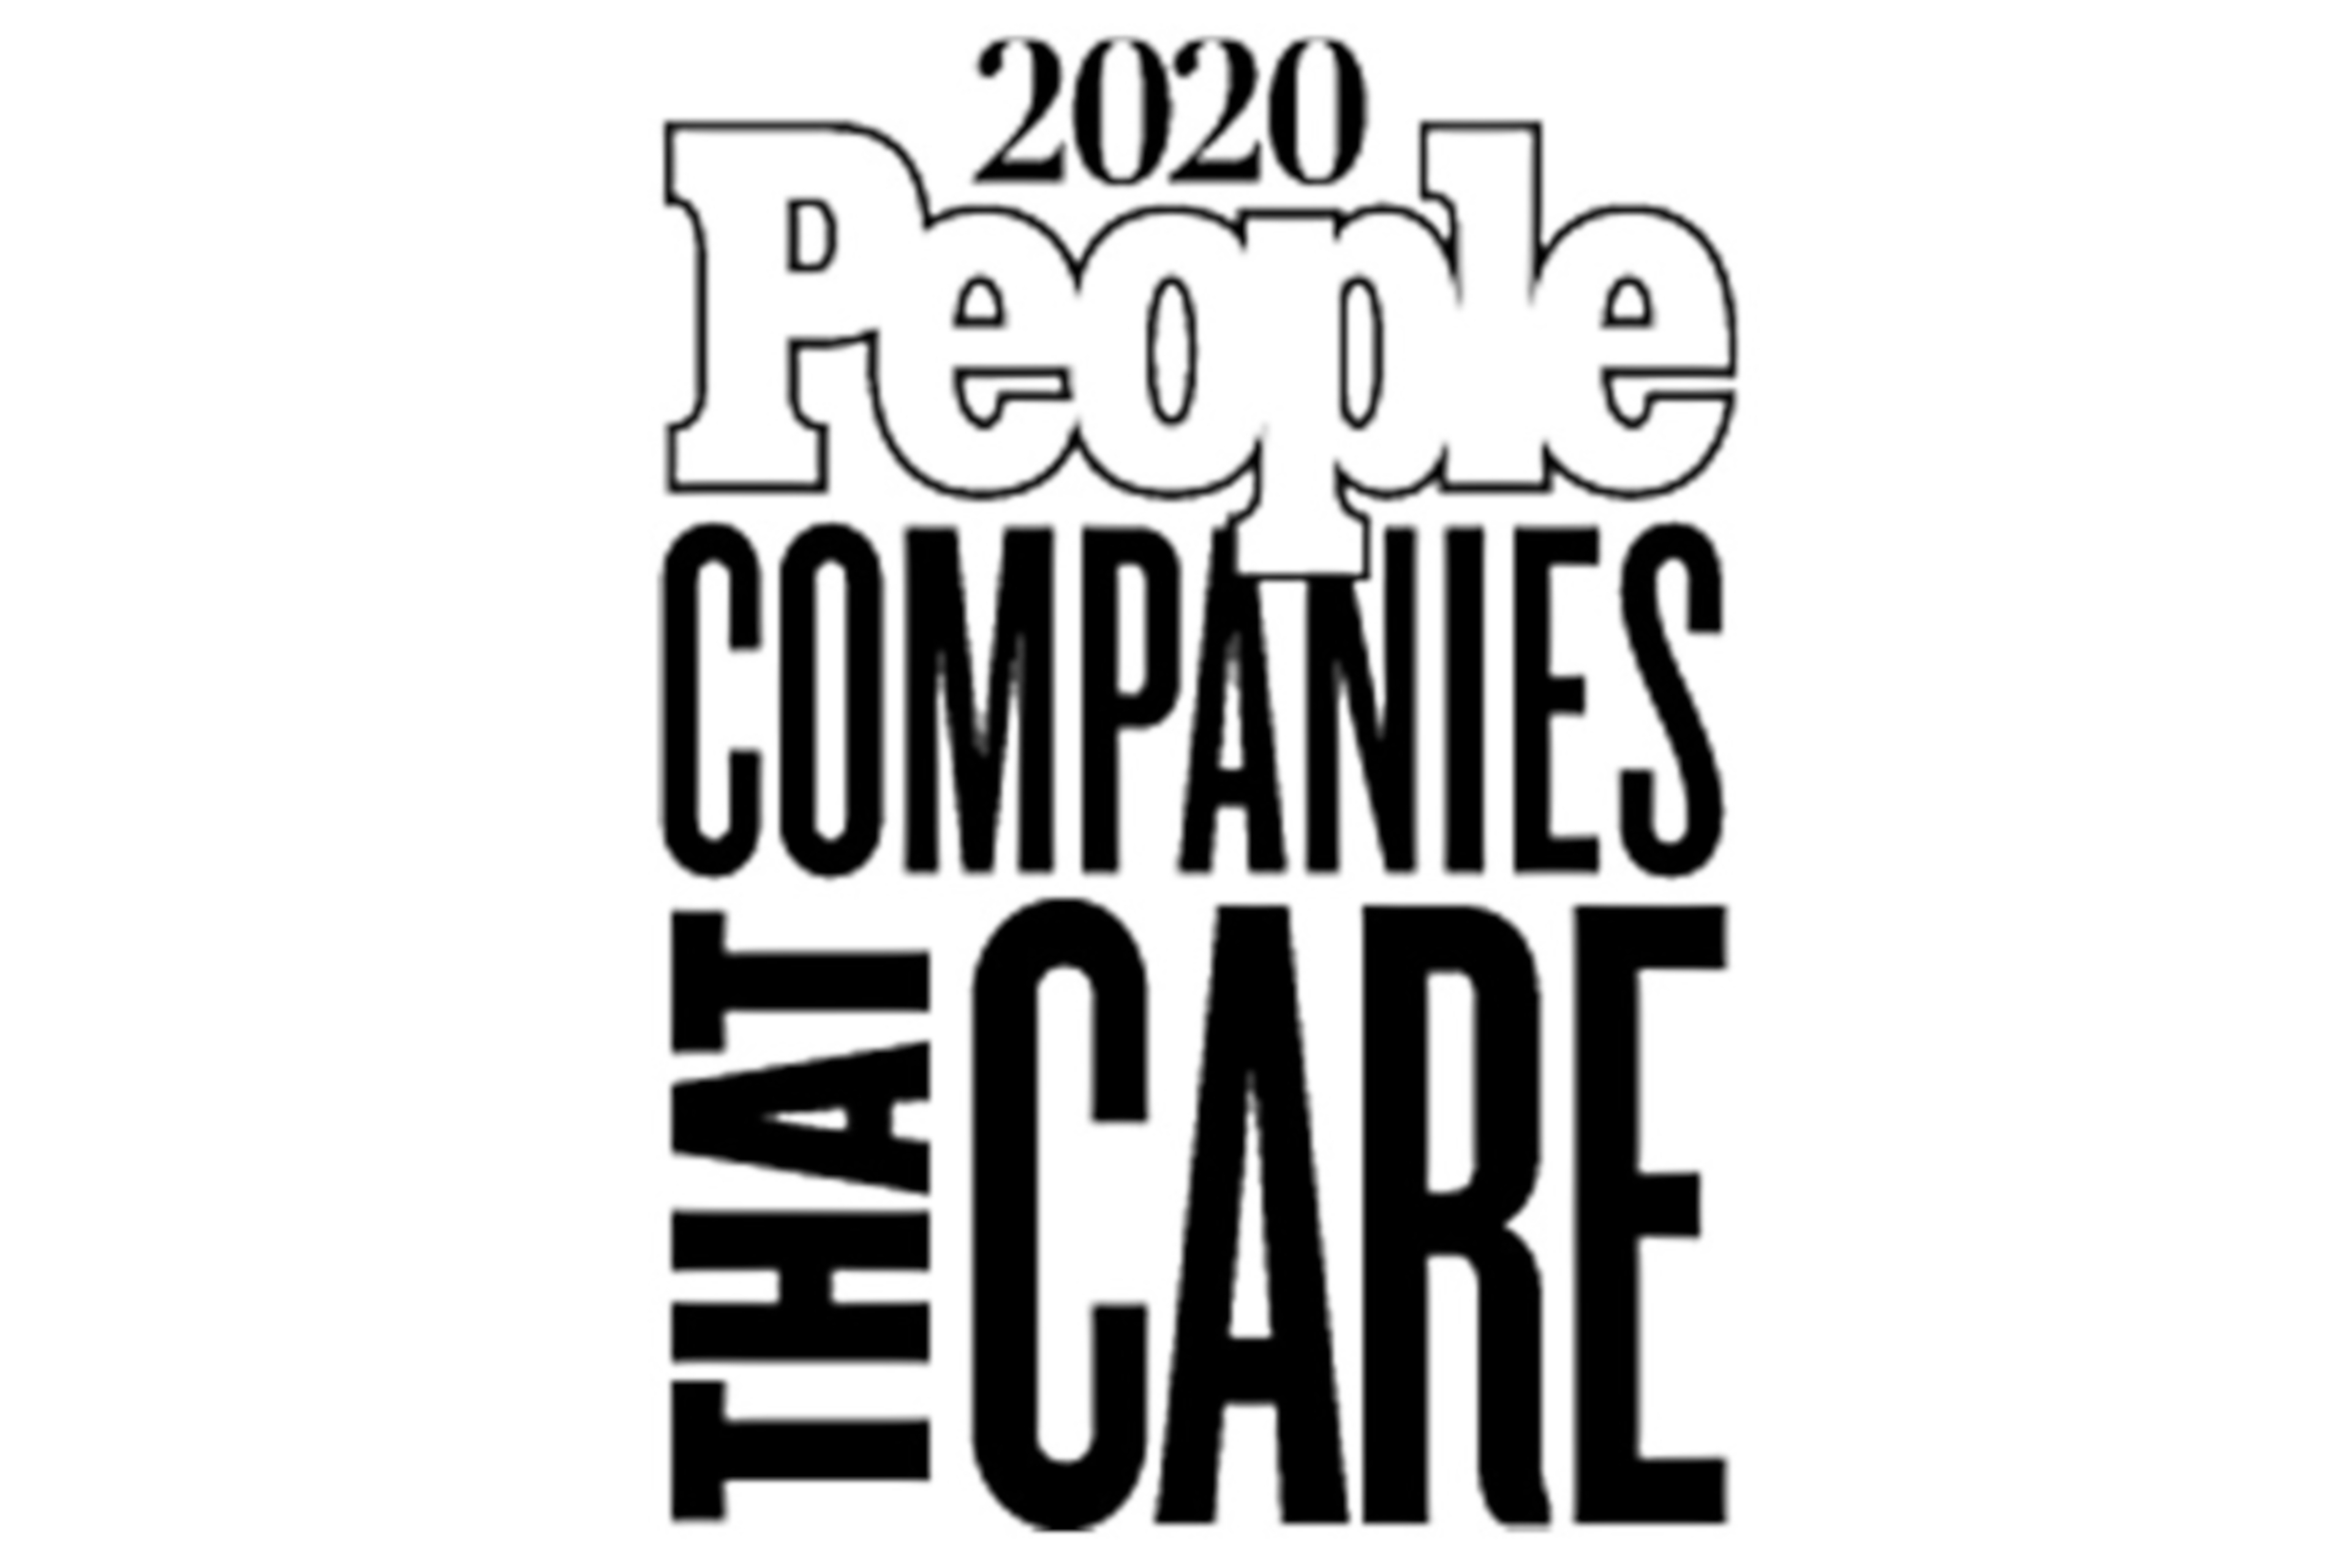 PEOPLE 2020 Companies that Care® - Great Place to Work